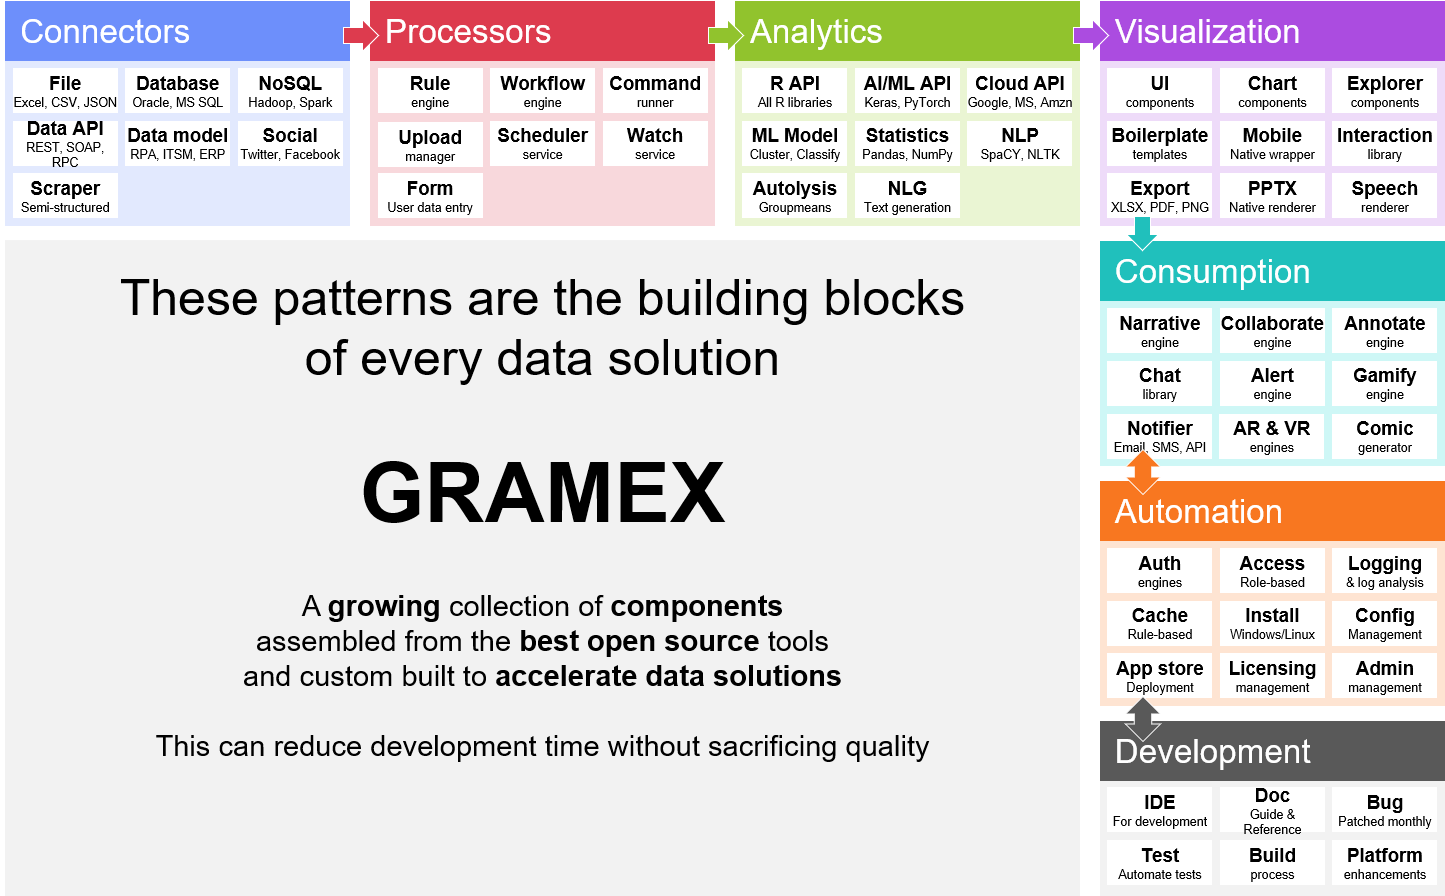 This image shows Gramex's low-code development architechture. The pre-built components, templates, open source libraries and visualizations are the building blocks for any data science and analytics product.